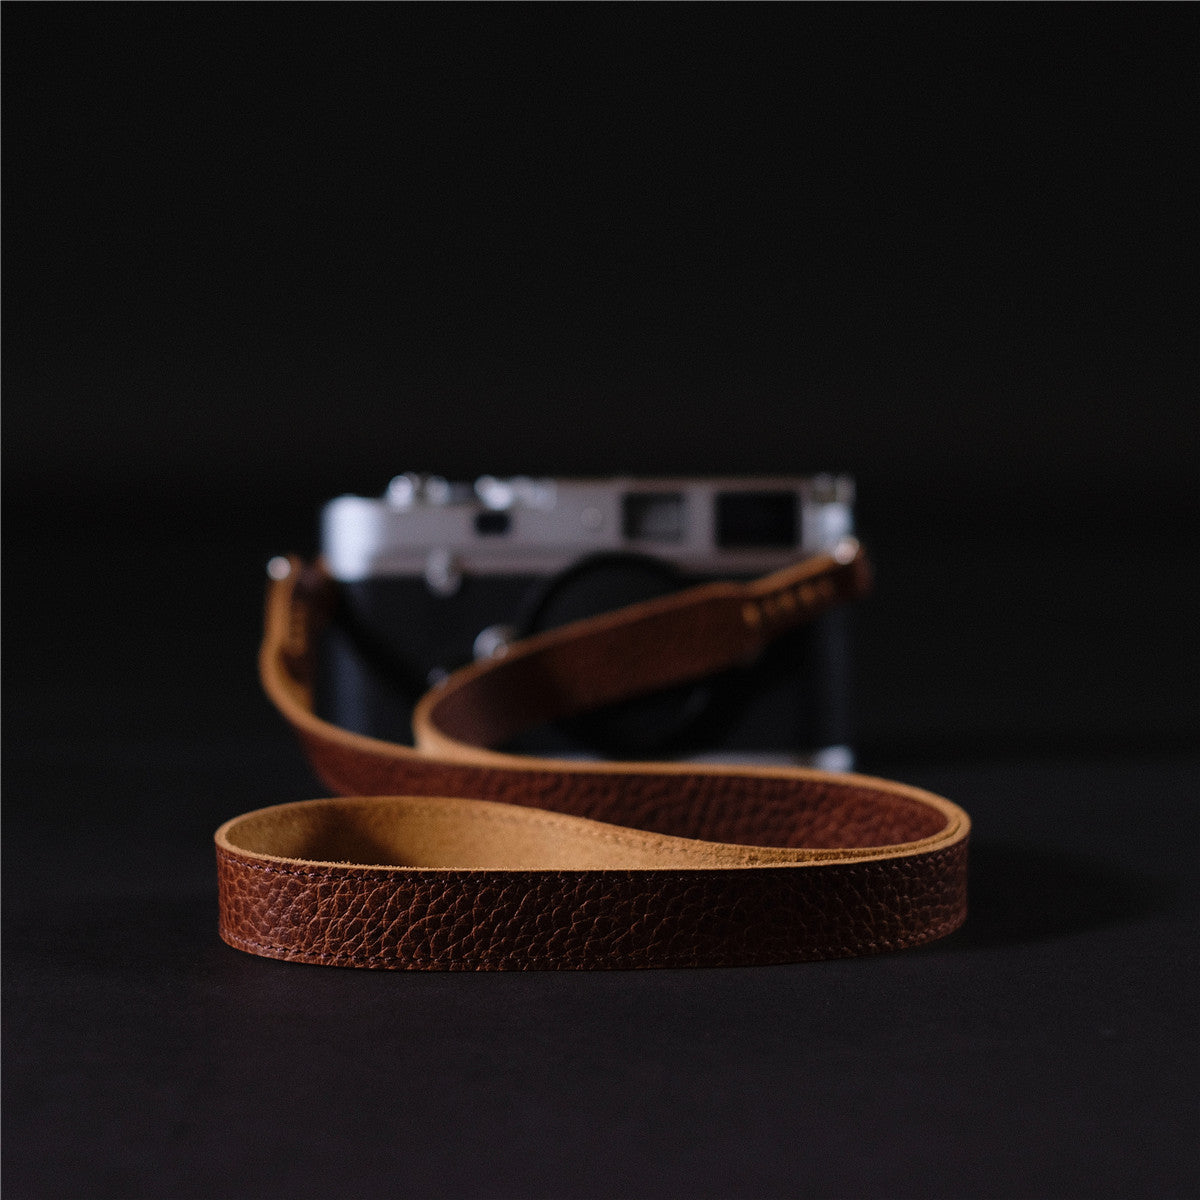 Italy Vegetable Tanning Cowhide Handmade DSLR Leather Camera Strap - LCS007/LCS008 - icambag